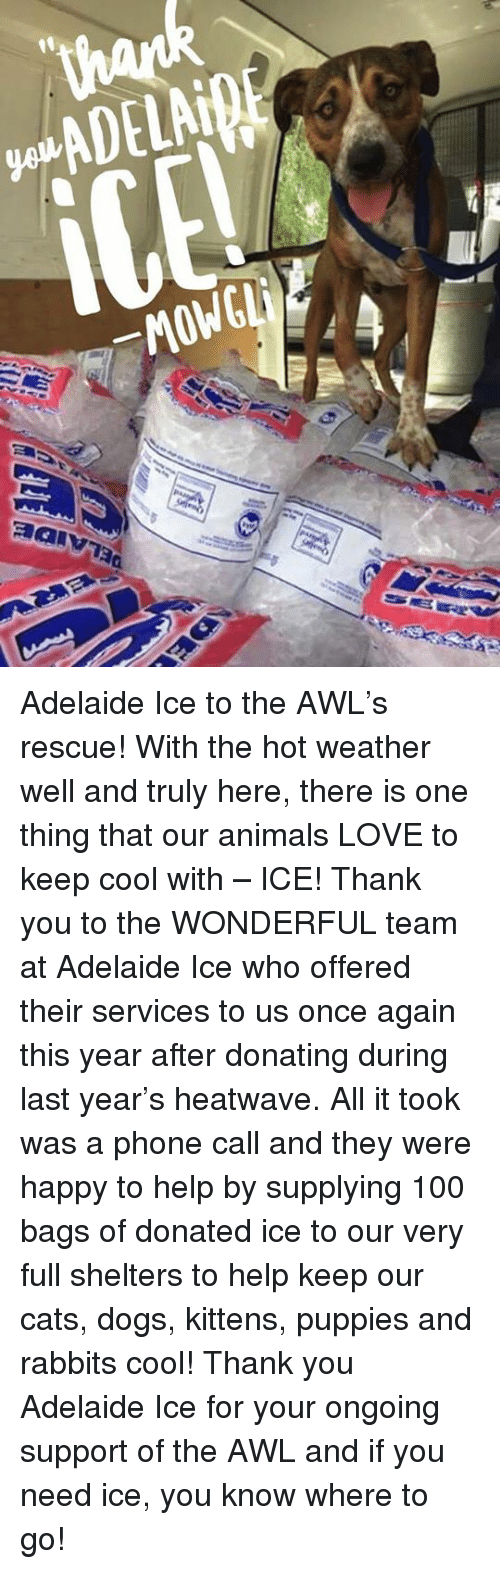 Awl: ADELAiBE  _MOWGLi  제alv73a Adelaide Ice to the AWL's rescue!  With the hot weather well and truly here, there is one thing that our animals LOVE to keep cool with – ICE!  Thank you to the WONDERFUL team at Adelaide Ice who offered their services to us once again this year after donating during last year's heatwave.  All it took was a phone call and they were happy to help by supplying 100 bags of donated ice to our very full shelters to help keep our cats, dogs, kittens, puppies and rabbits cool!  Thank you Adelaide Ice for your ongoing support of the AWL and if you need ice, you know where to go!